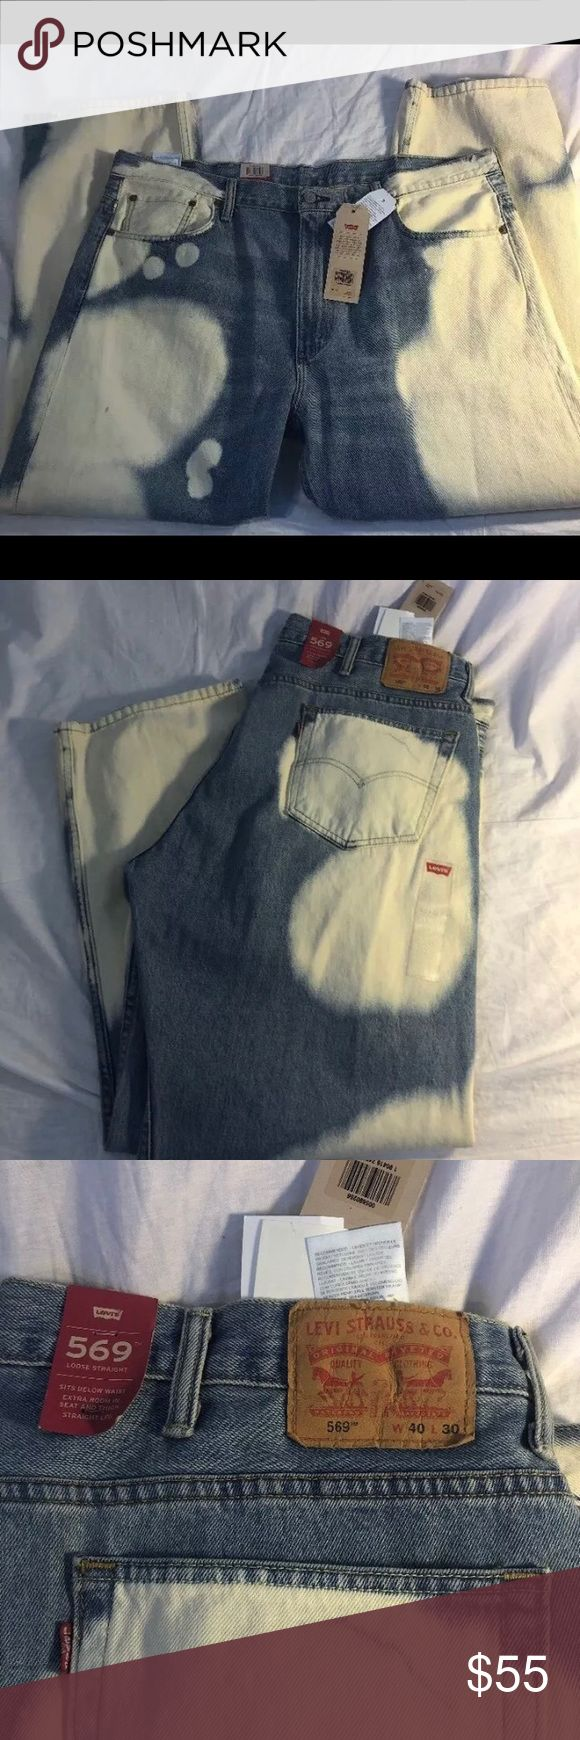 Levis 569 Mens Loose Straight 40 X 30 Blue White Levis 569 Mens Loose Straight Fit Denim Jeans 40 X 30 Blue White Bleached $69.50 Levi's Jeans Relaxed